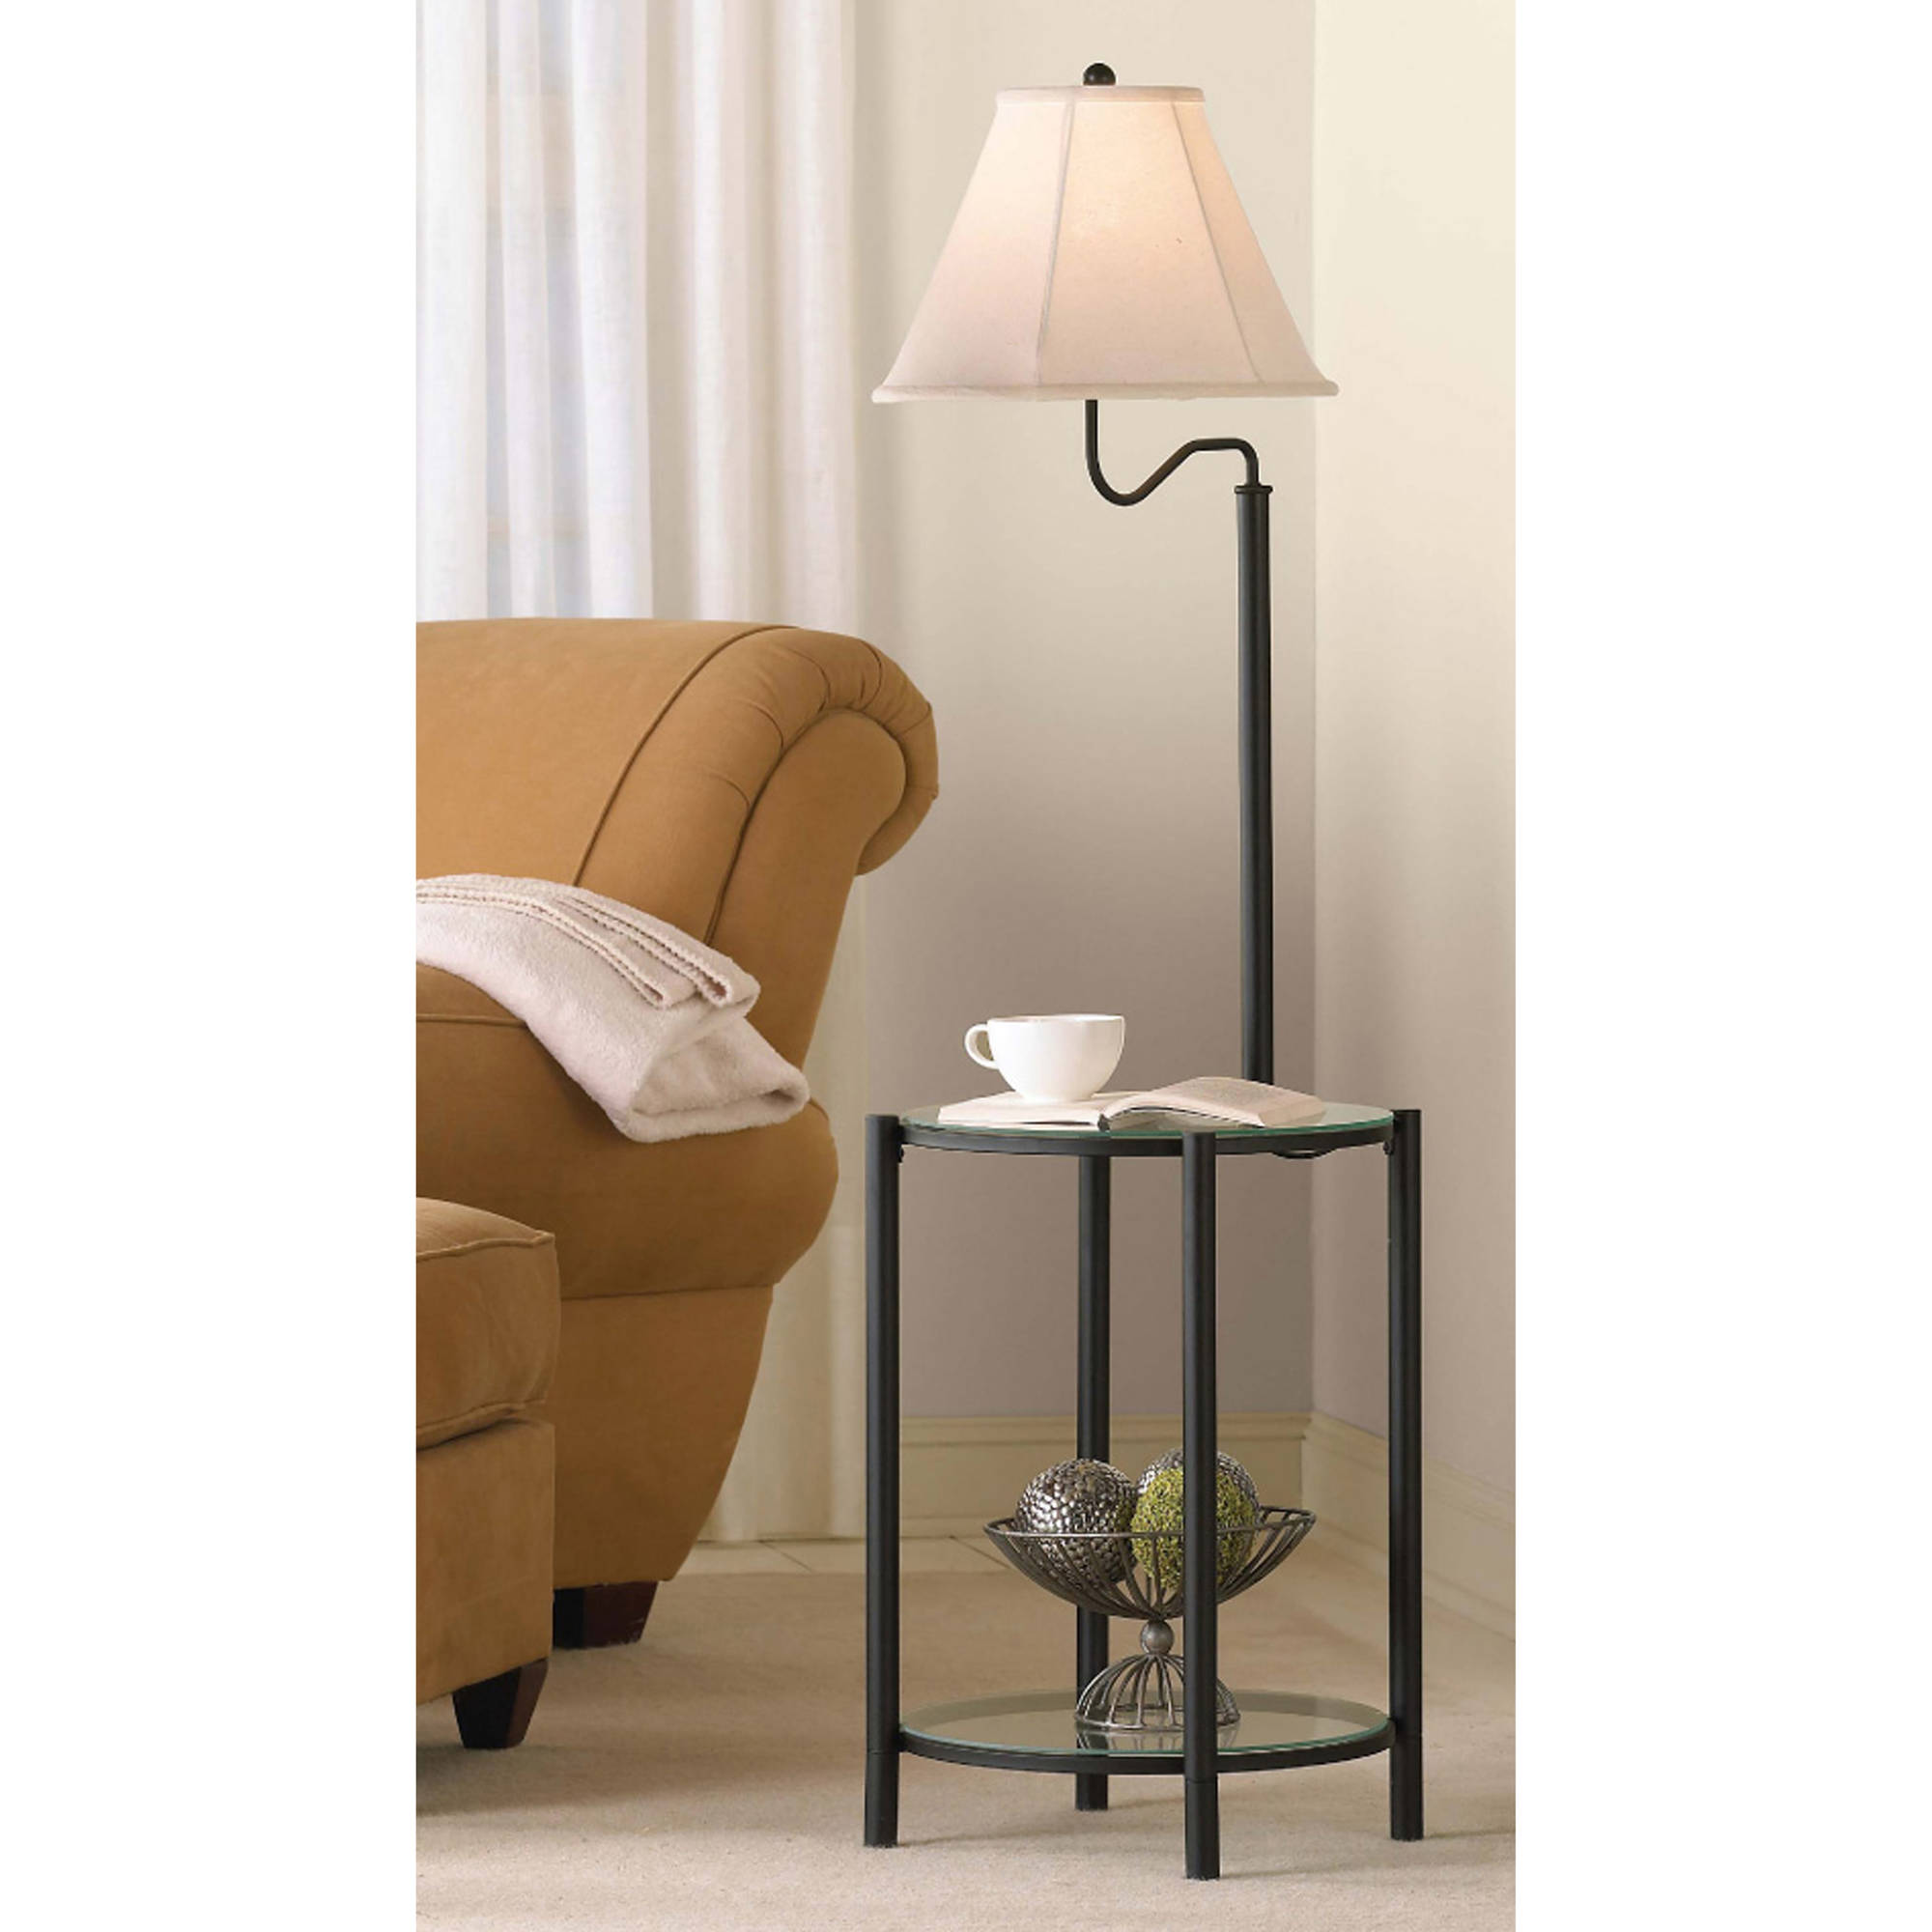 mainstays glass end table floor lamp matte black cfl bulb included accent with attached inexpensive small tables rustic desk round silver grey patterned armchair ikea toy storage